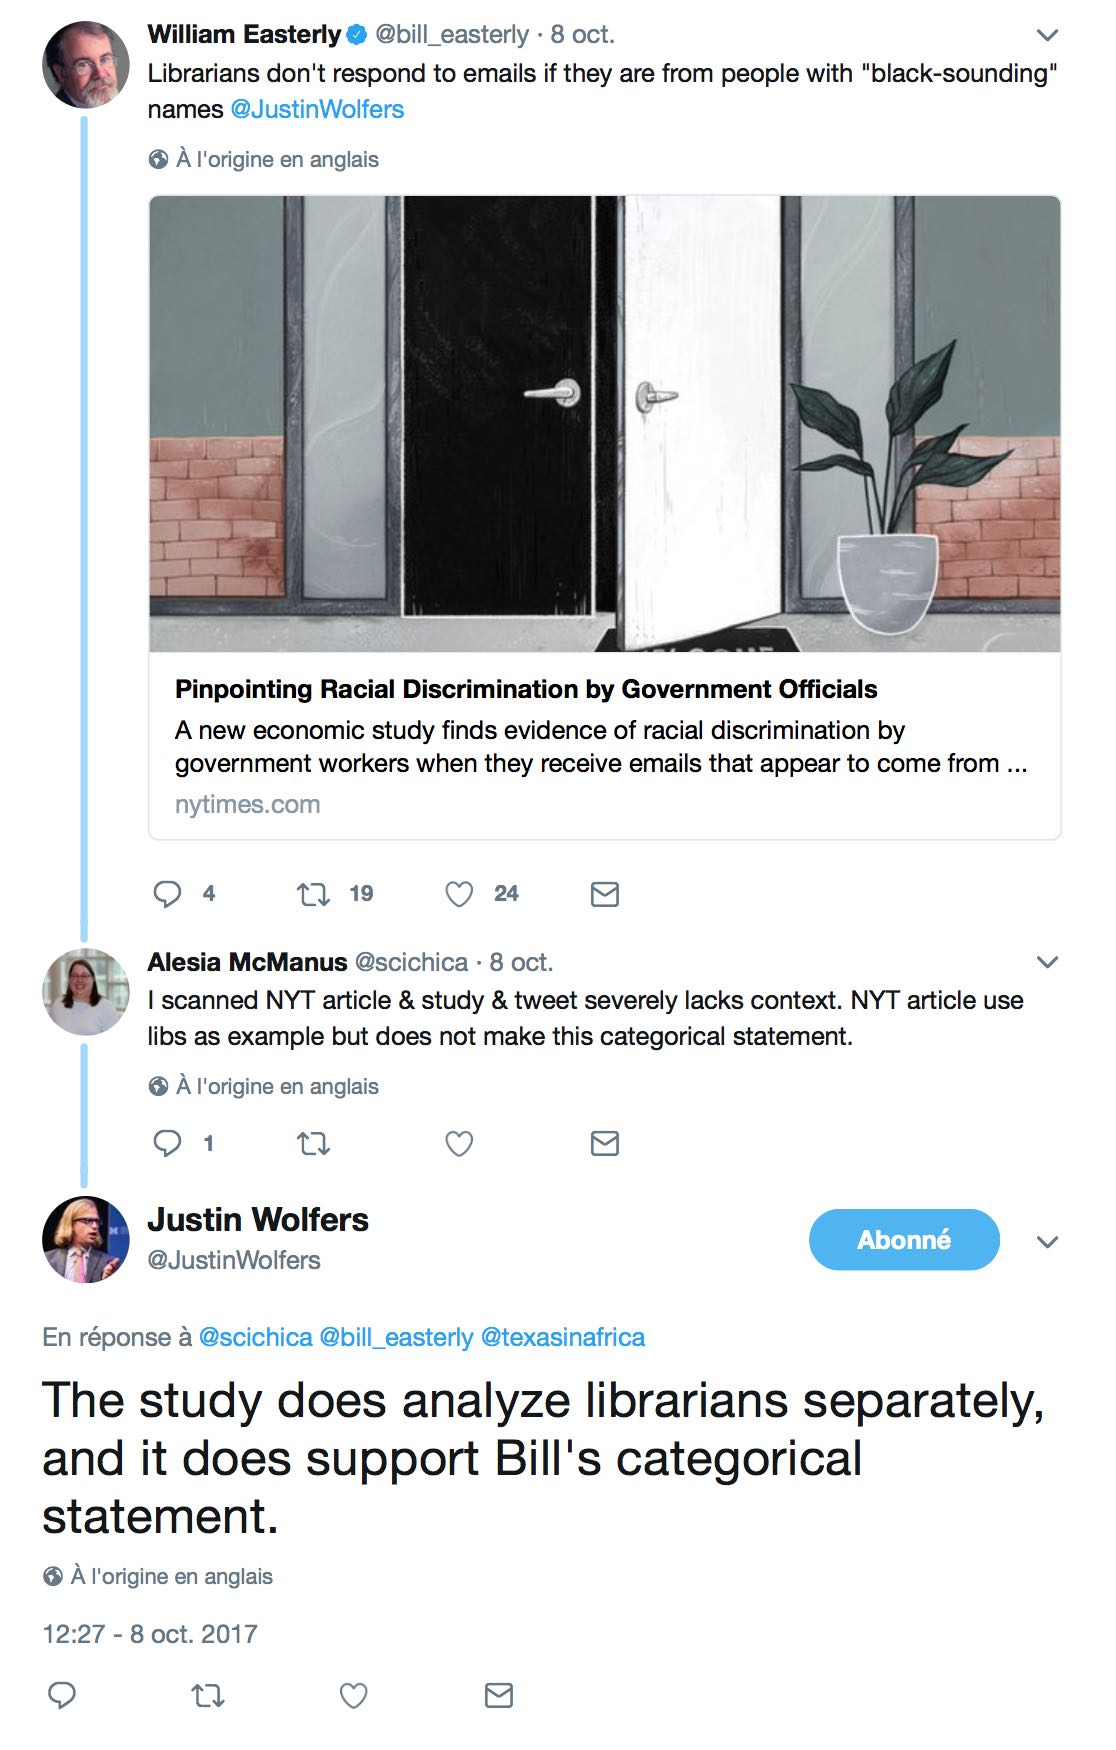 The scourge of white supremacy does not even spare public services actually despite what wolfers claims the study absolutely does not support easterlys categorical statement and since both of them are professors of falaconquin